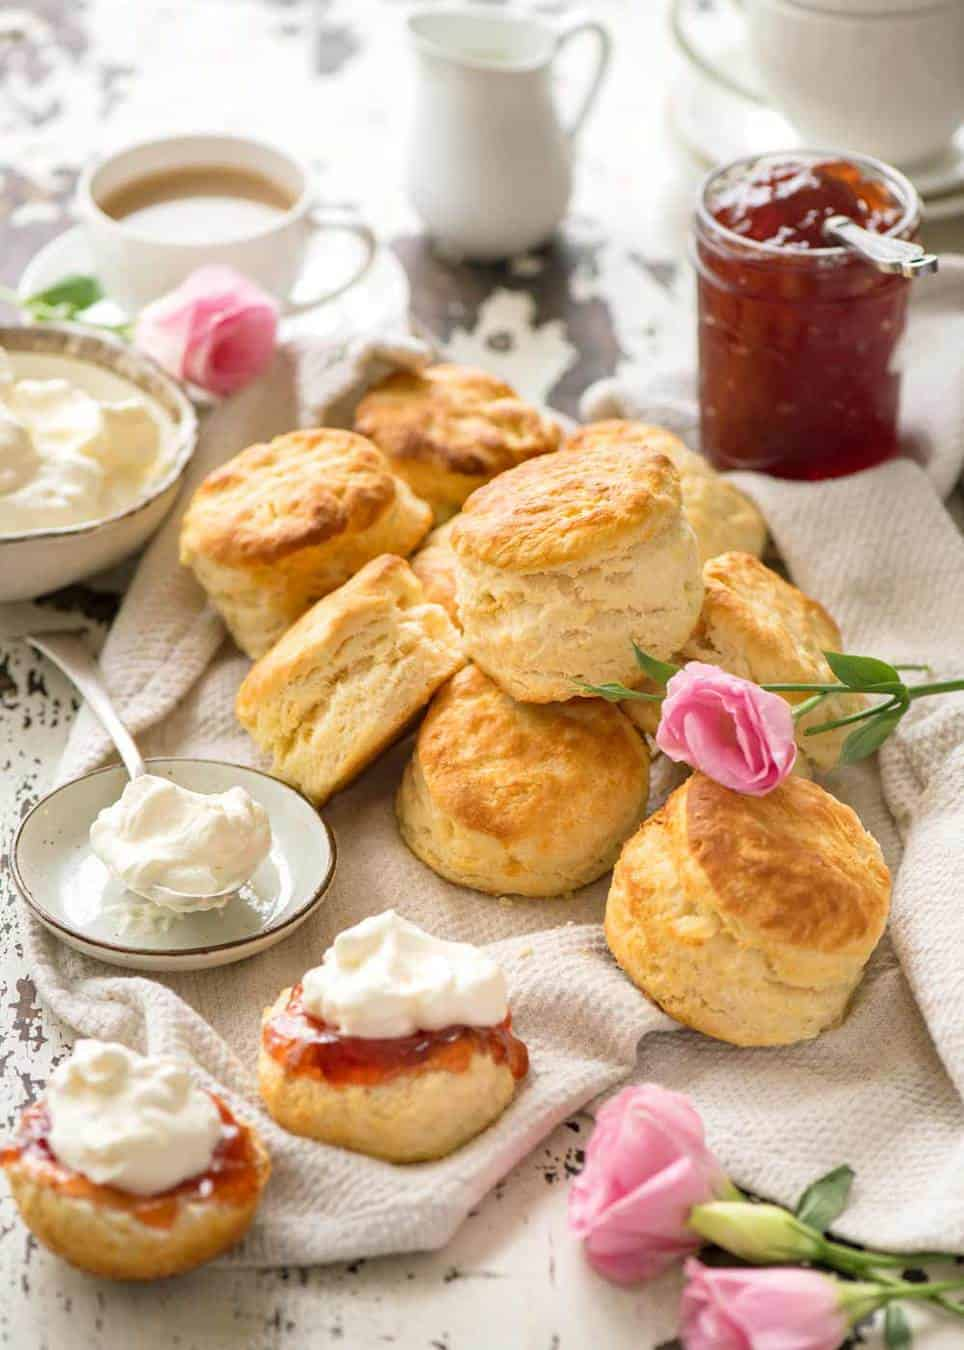 An afternoon tea with scones, jam and cream, with coffee and tea.